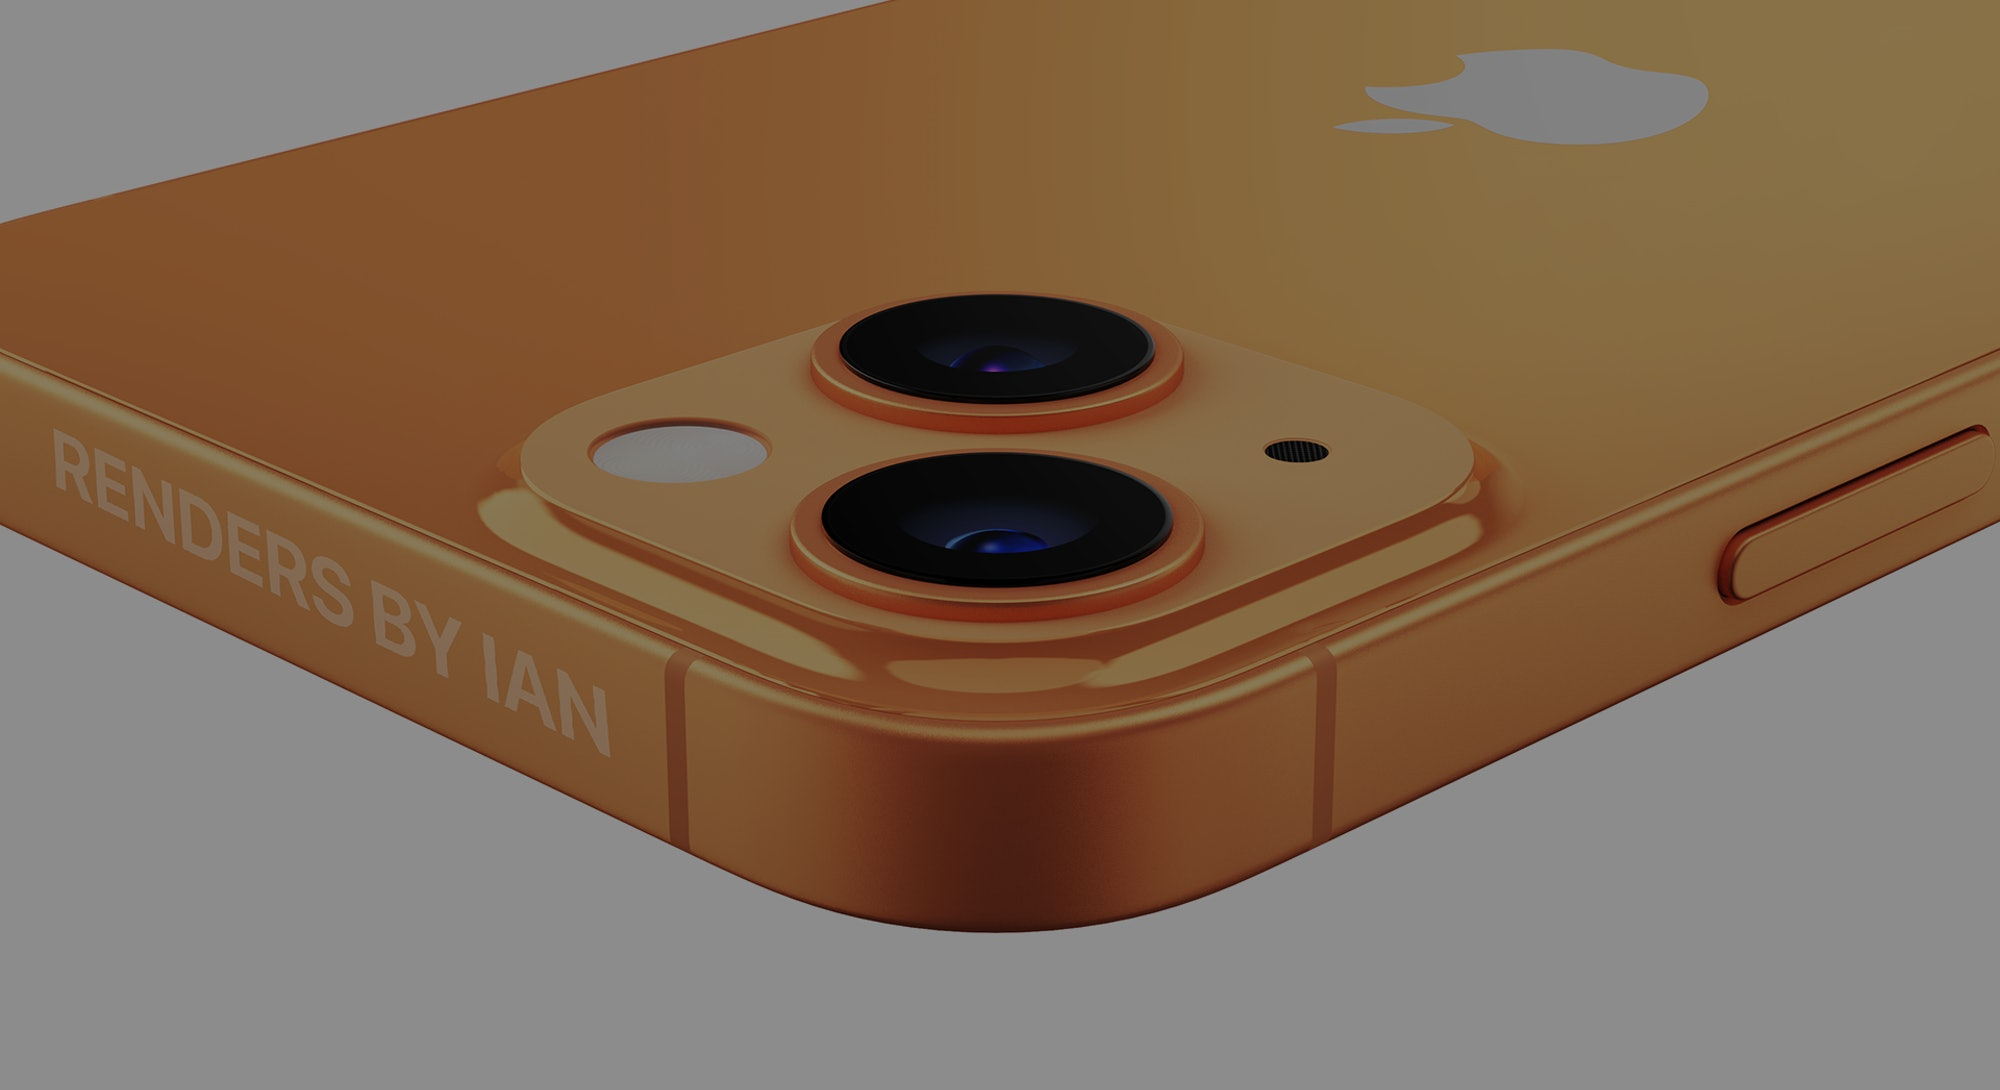 iPhone 13 concept render depiction created by RendersByIan